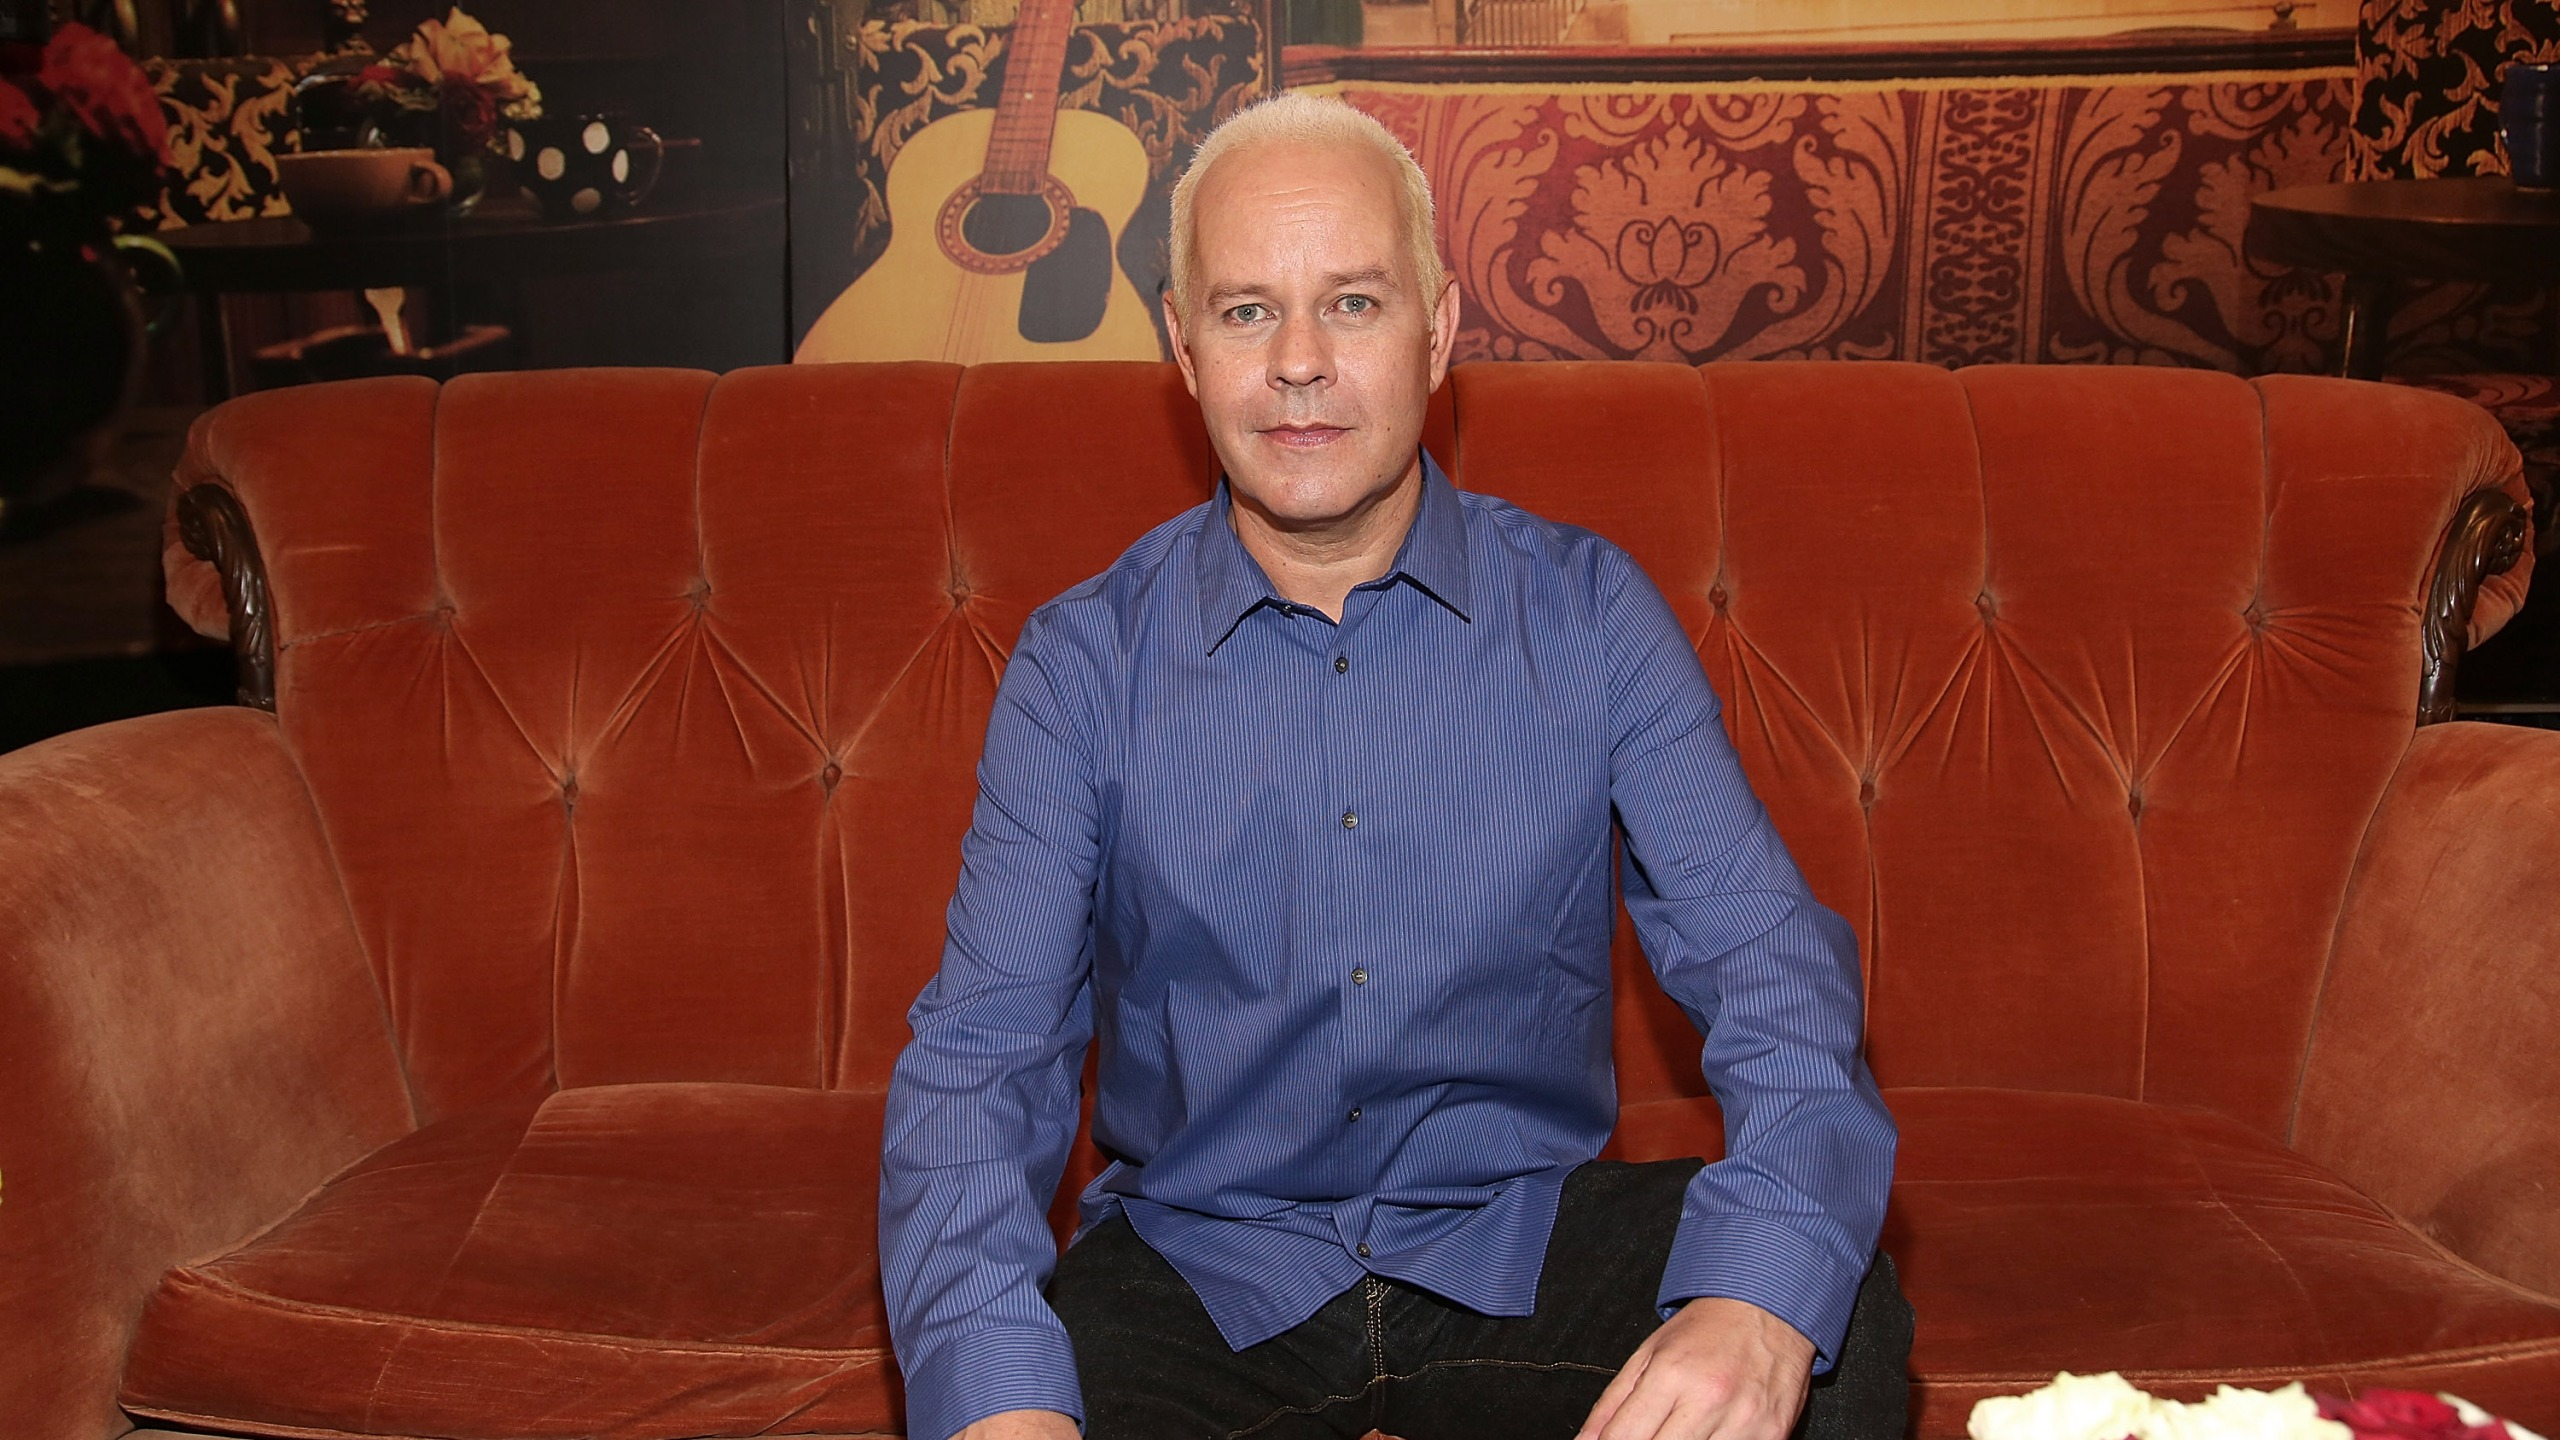 """NEW YORK, NY - SEPTEMBER 16: Actor James Michael Tyler attends the Central Perk Pop-Up Celebrating The 20th Anniversary Of """"Friends"""" on September 16, 2014 in New York City. (Photo by Paul Zimmerman/Getty Images)"""